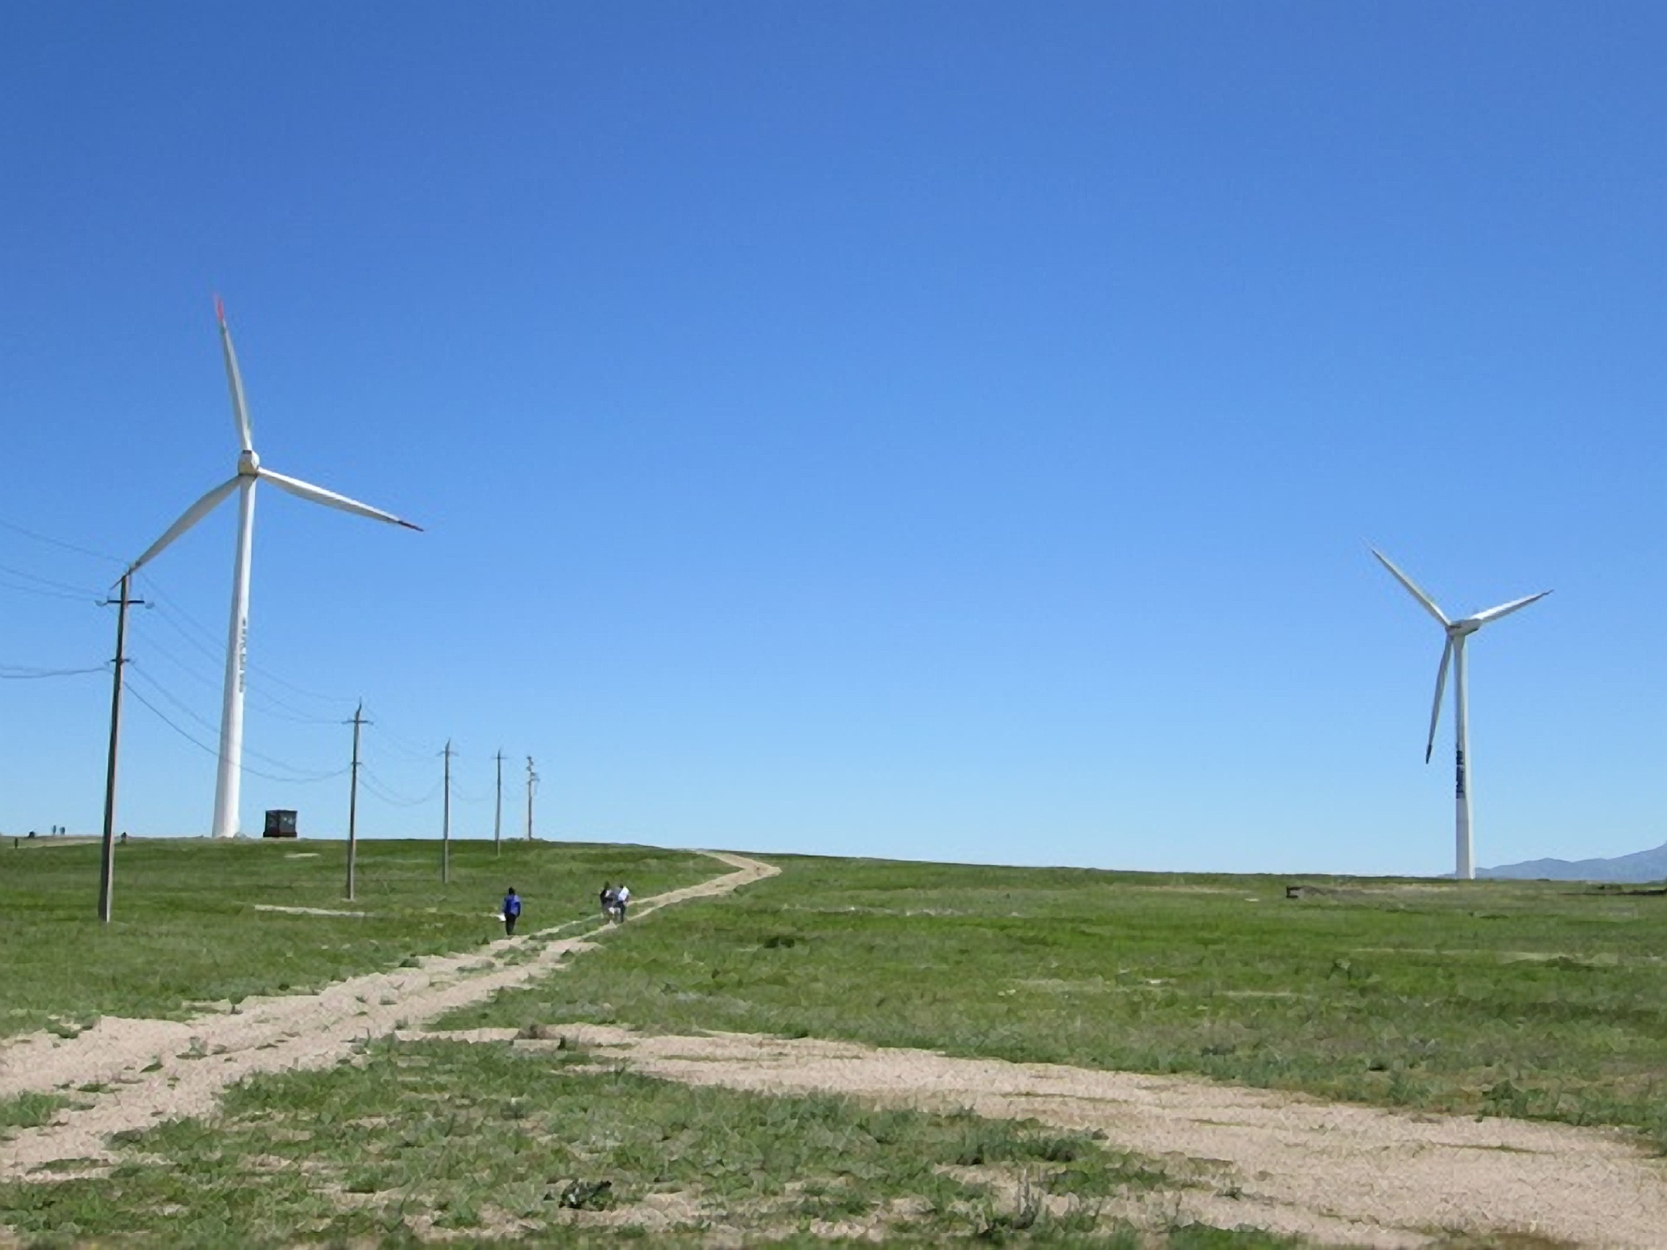 The first commercial wind facility was built near the Korday Mountains in 2011.